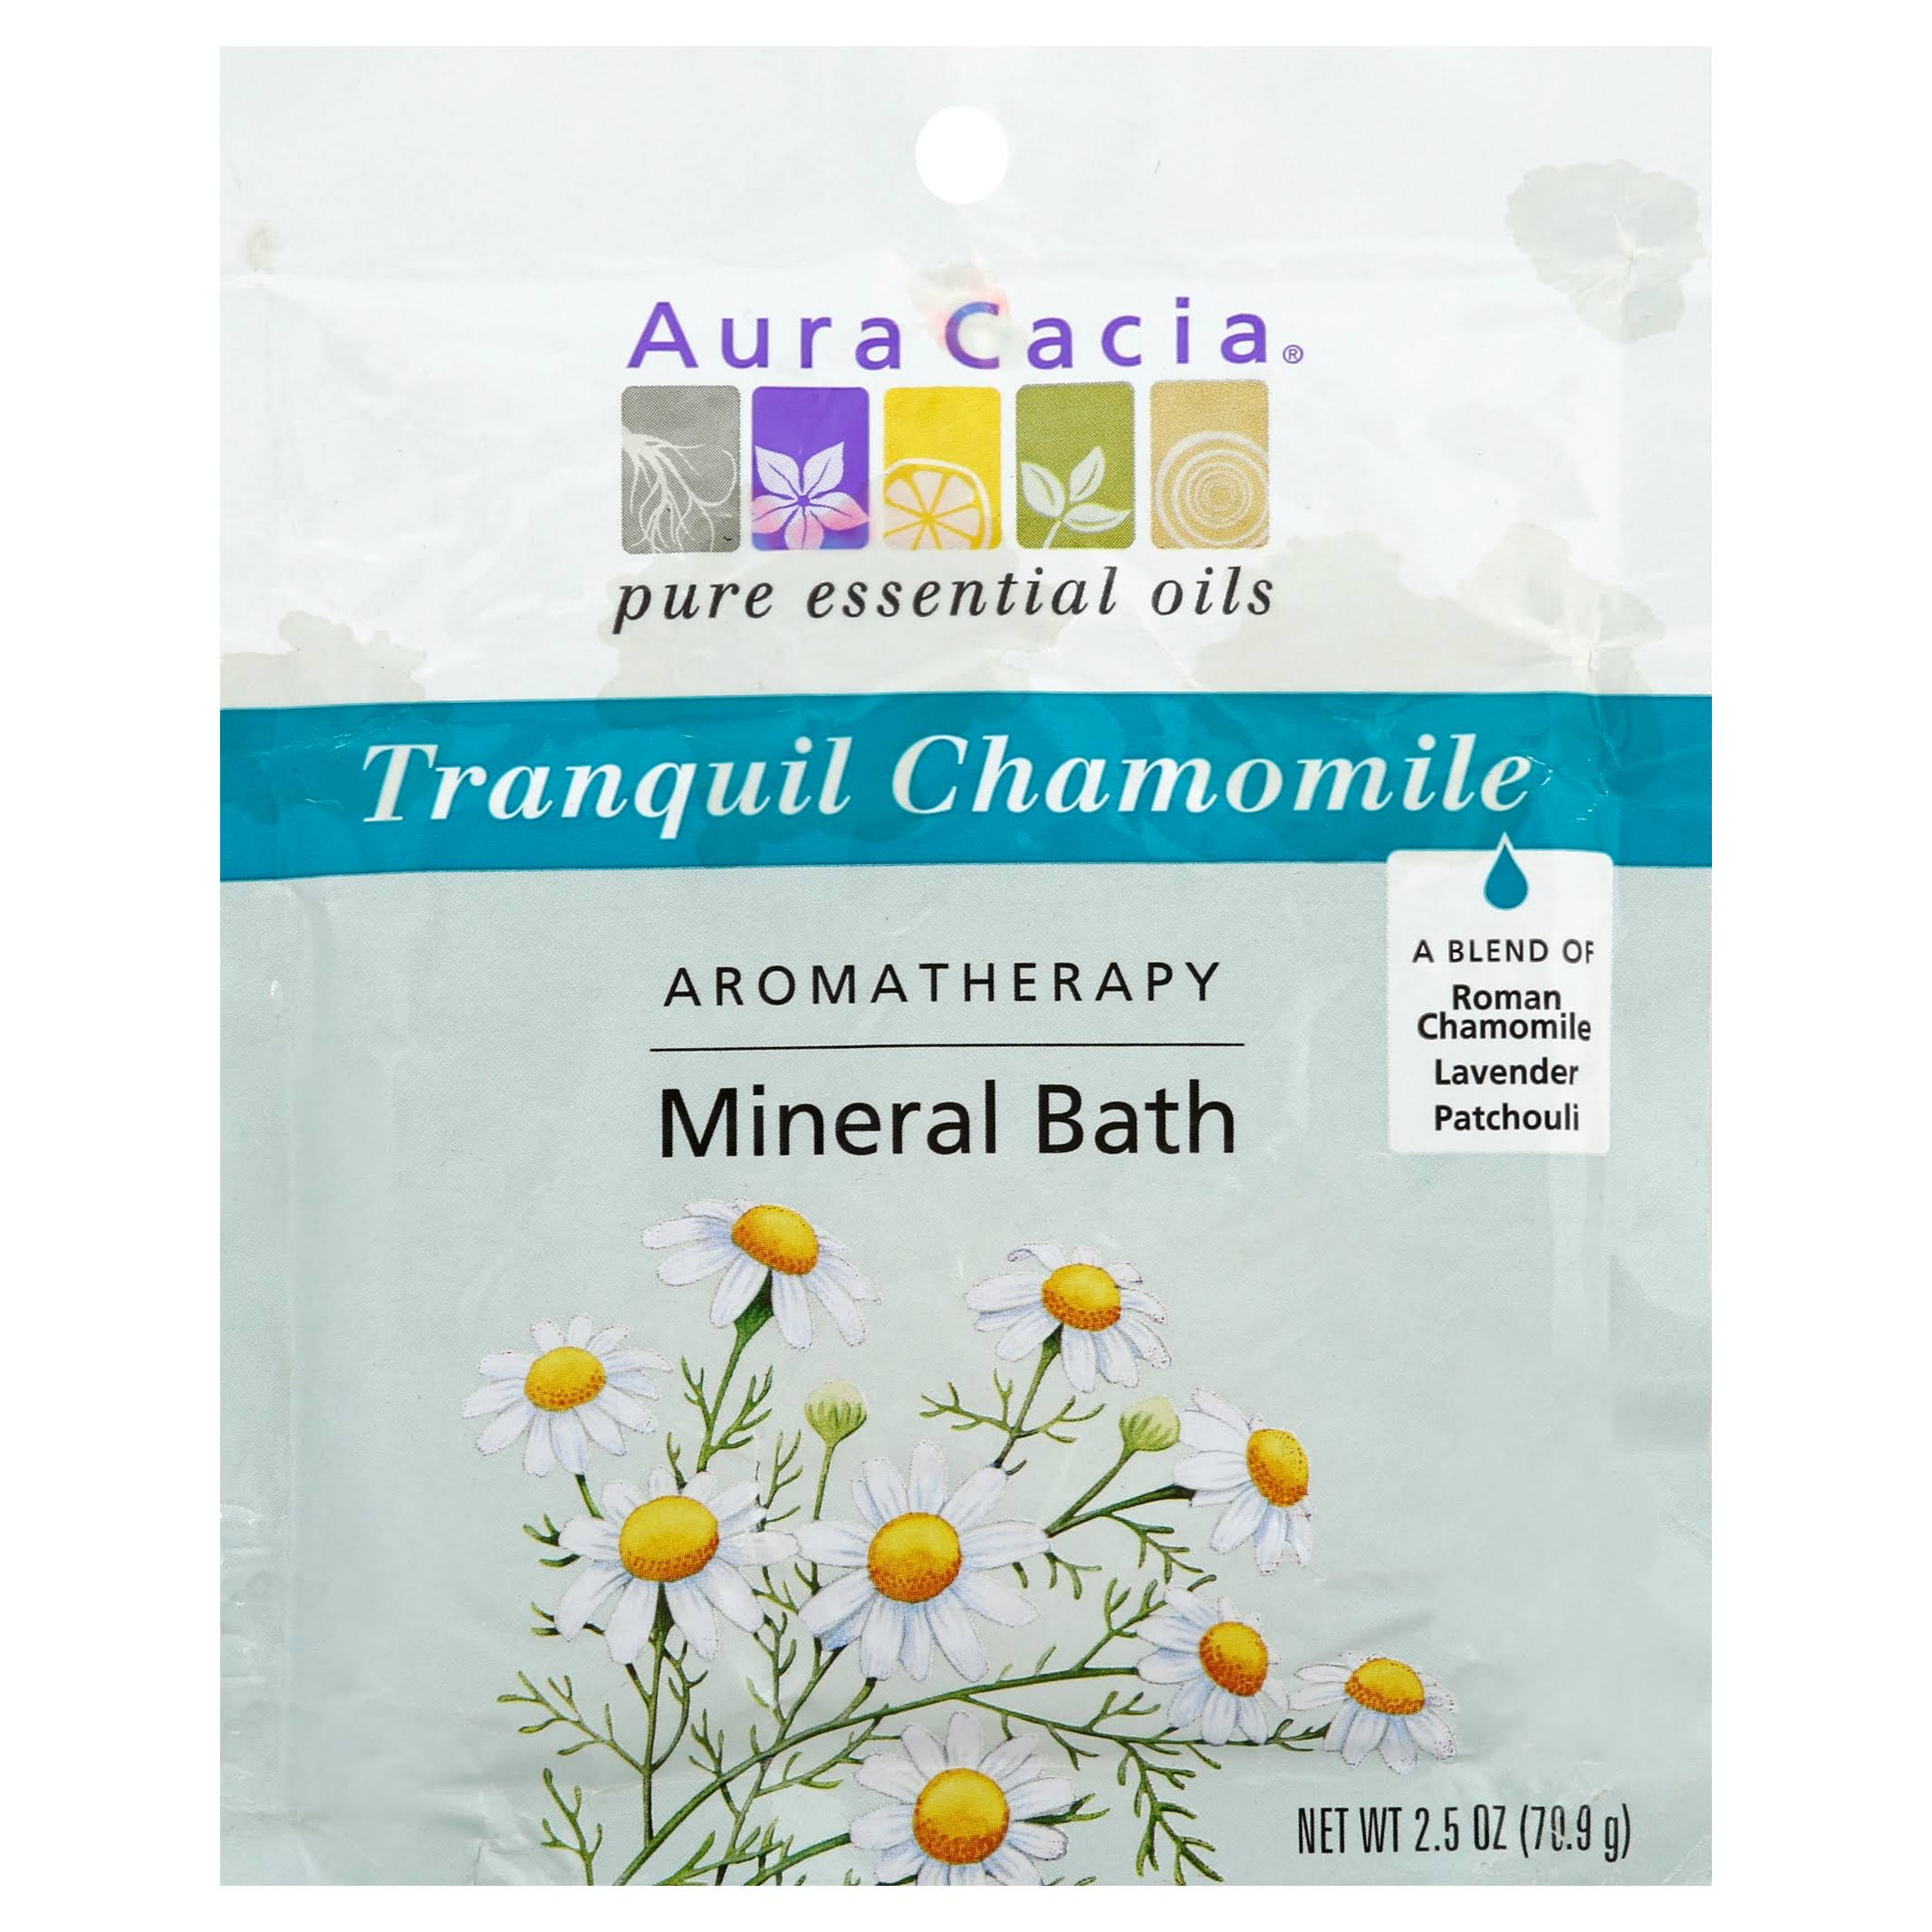 Aura Cacia Tranquility Aromatherapy Mineral Bath